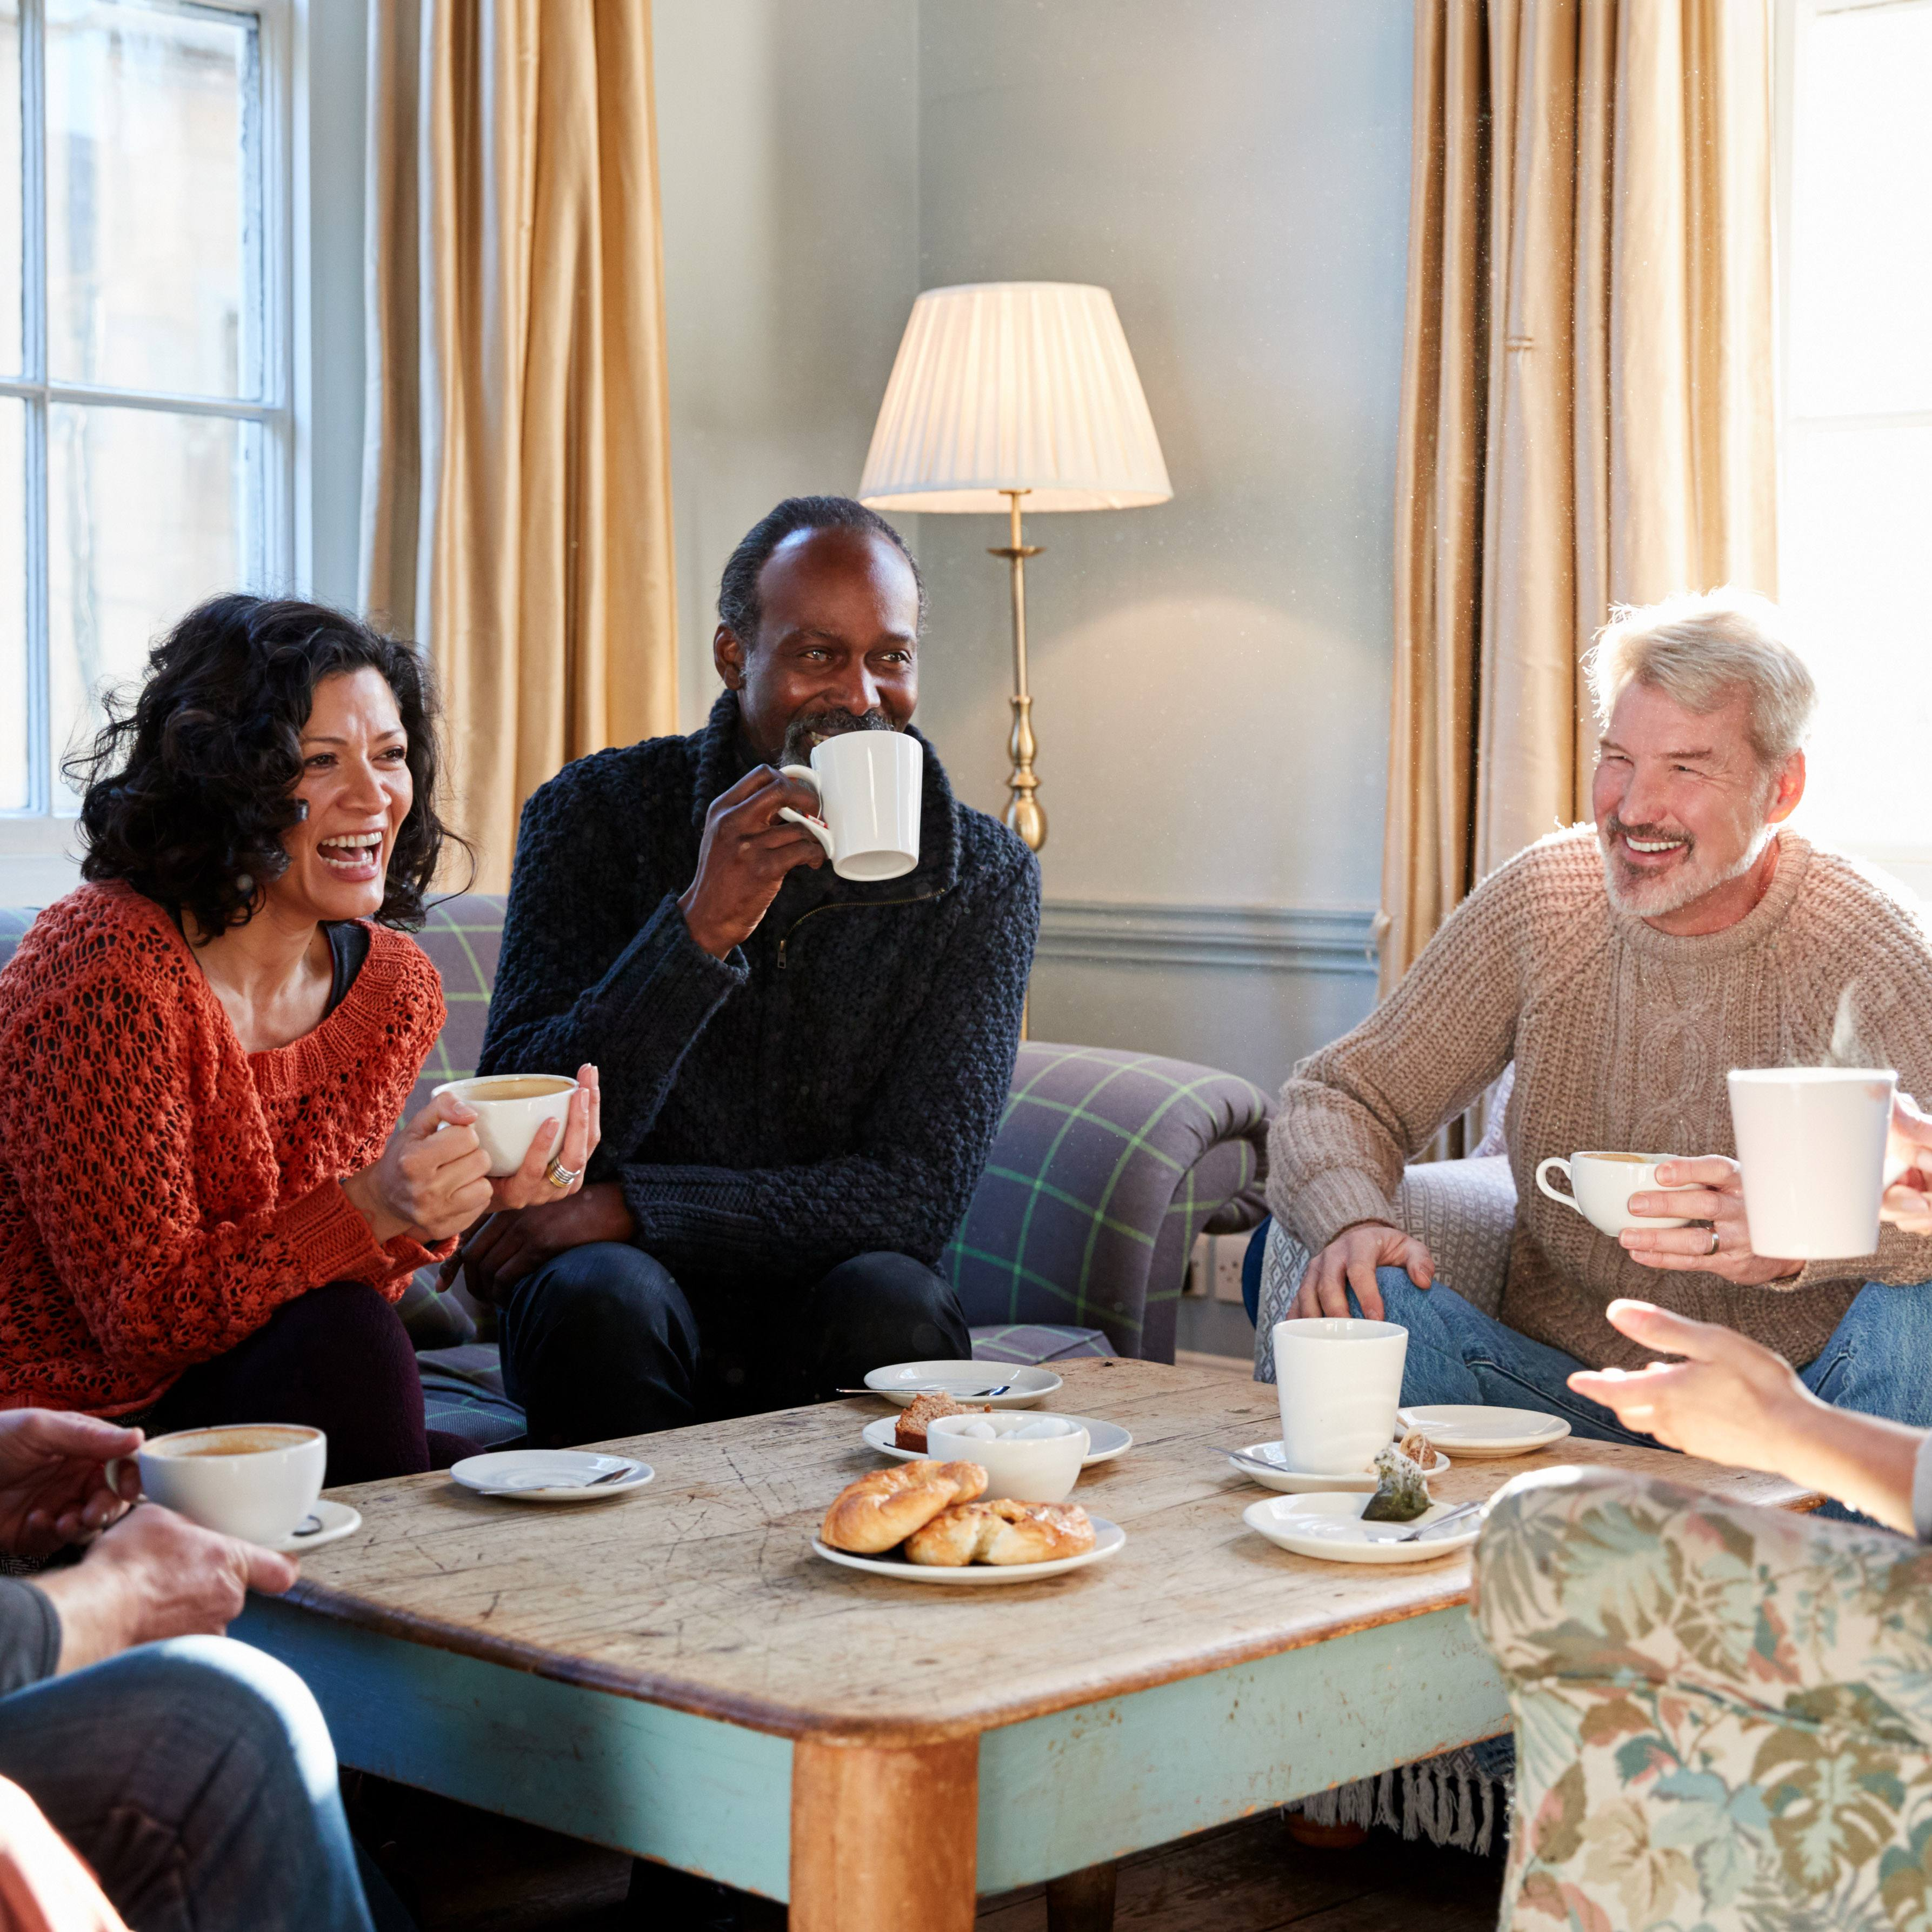 a group of smiling middle-aged men and women sitting around a low table in a living room, enjoying coffee, tea and pastries